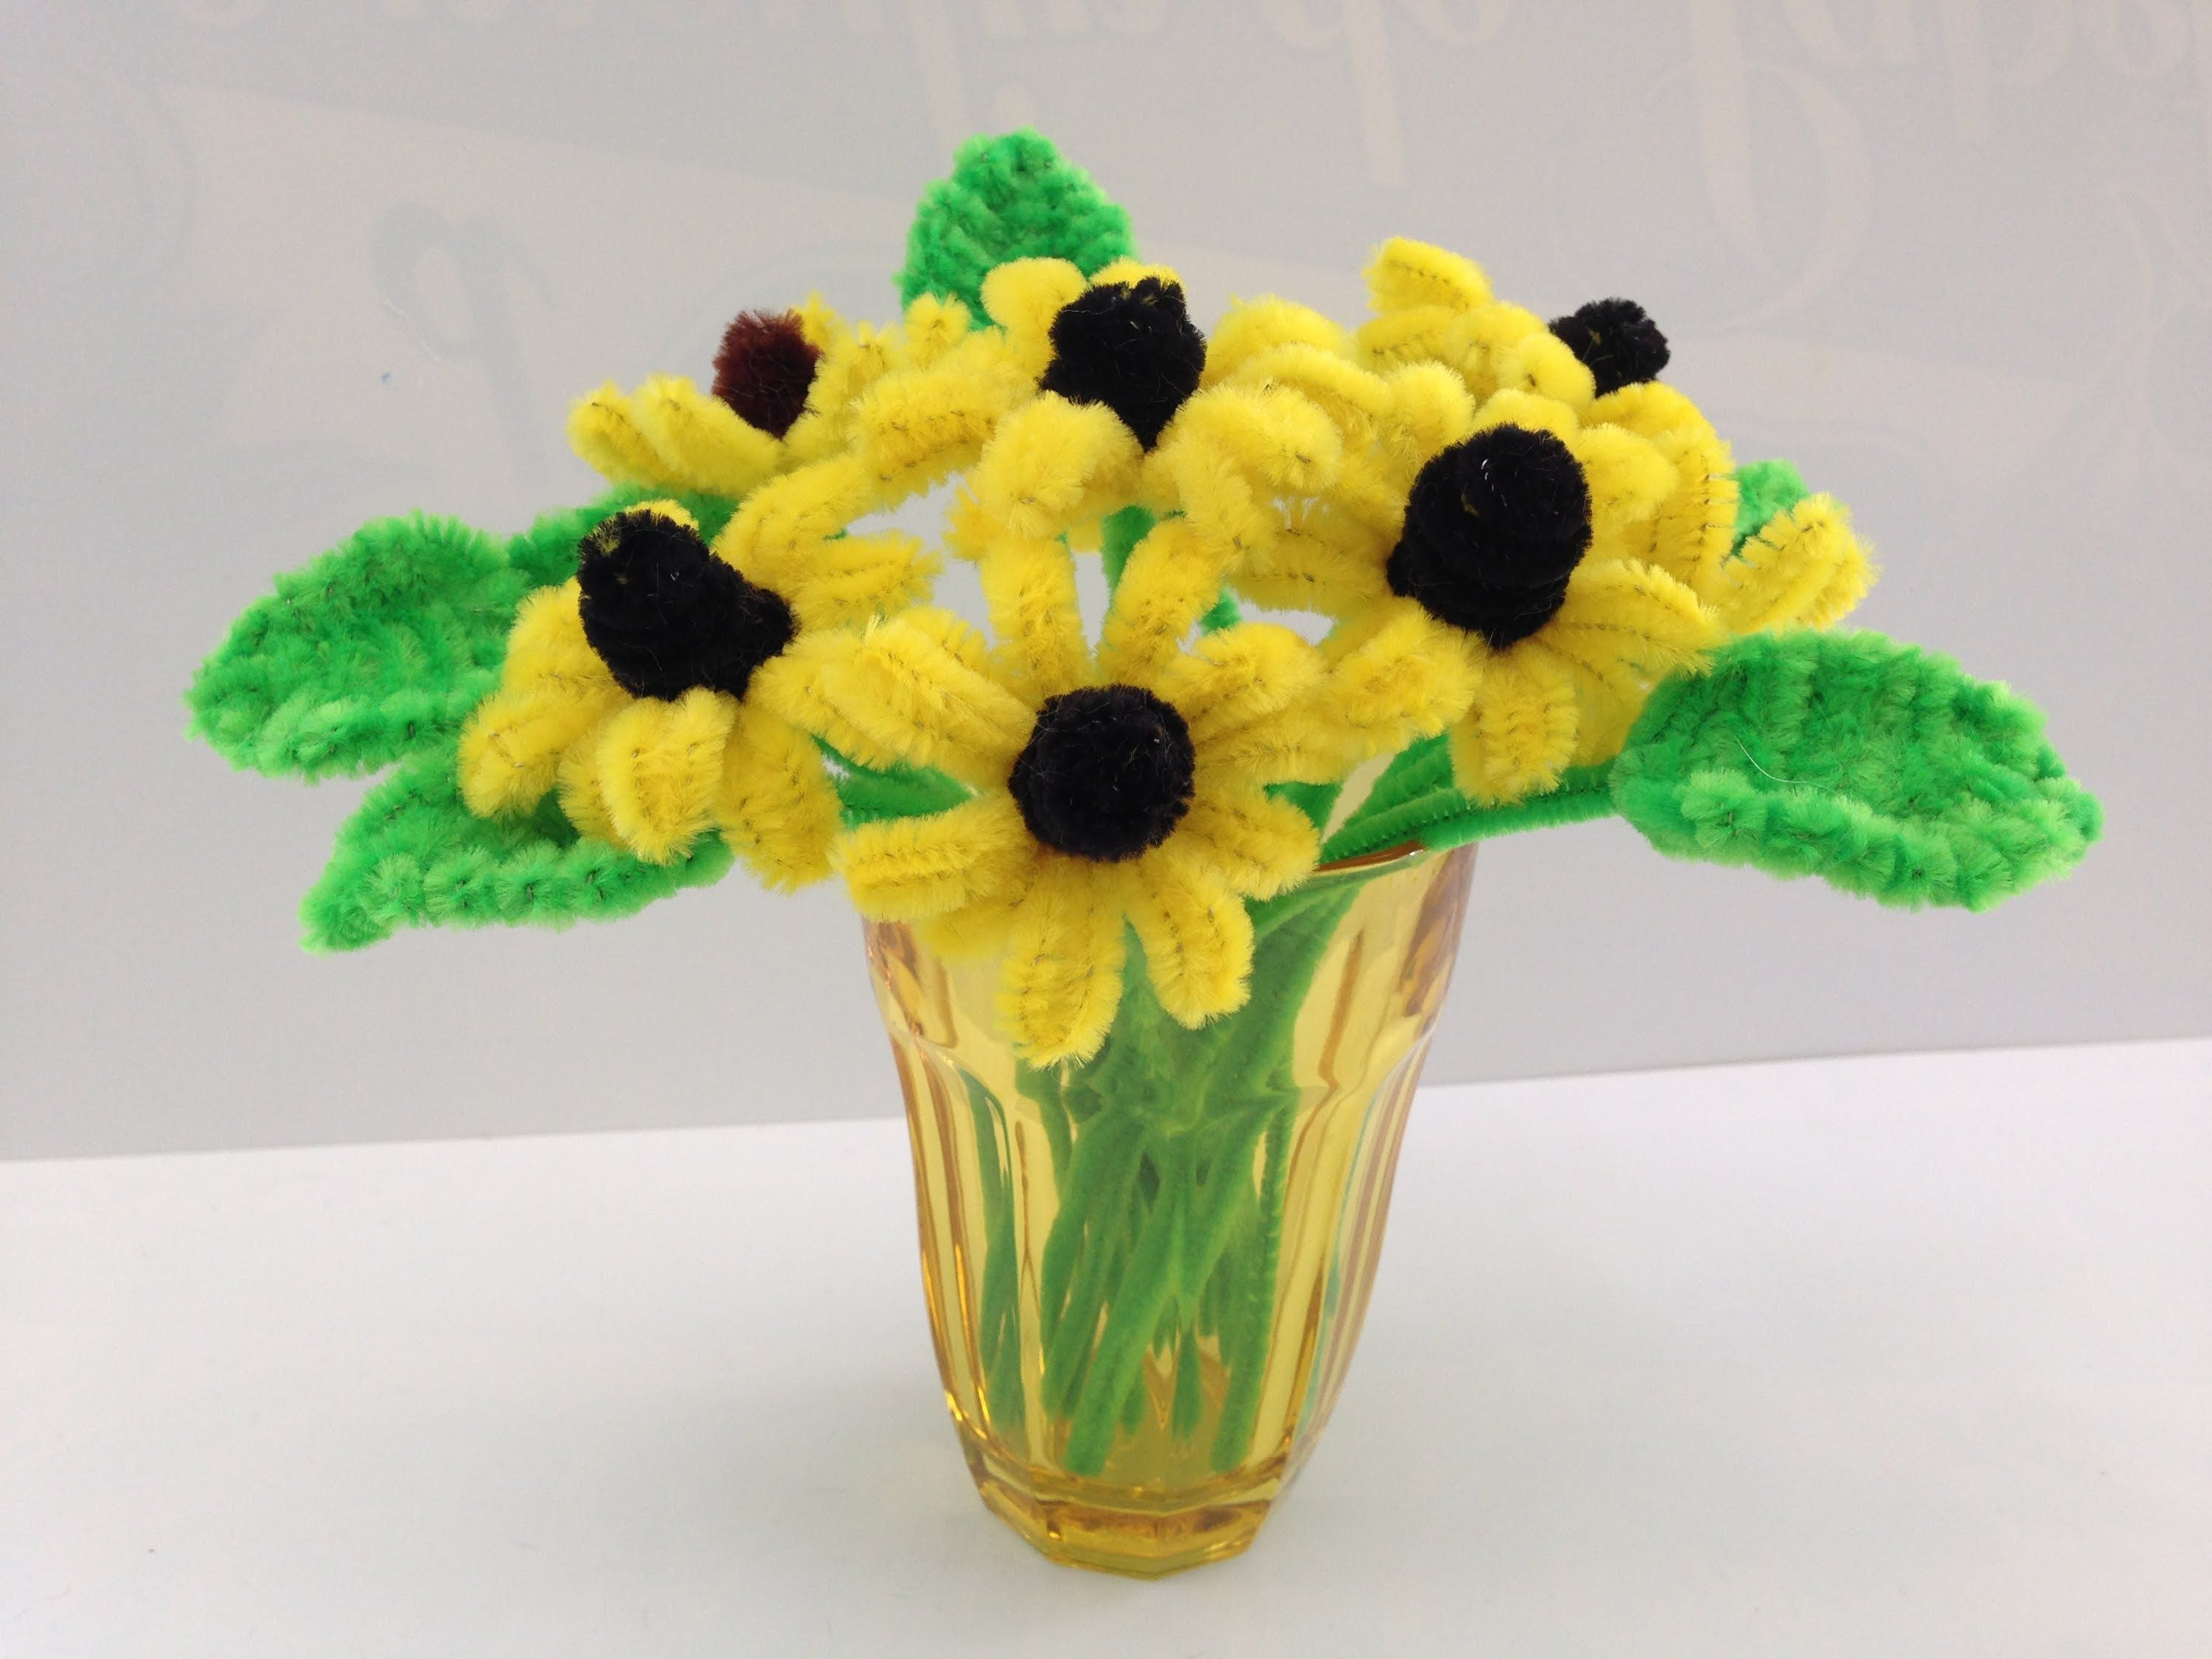 Pipe cleaners arts and crafts - Yellow Pipe Cleaner Flower Diy Tutorial 30